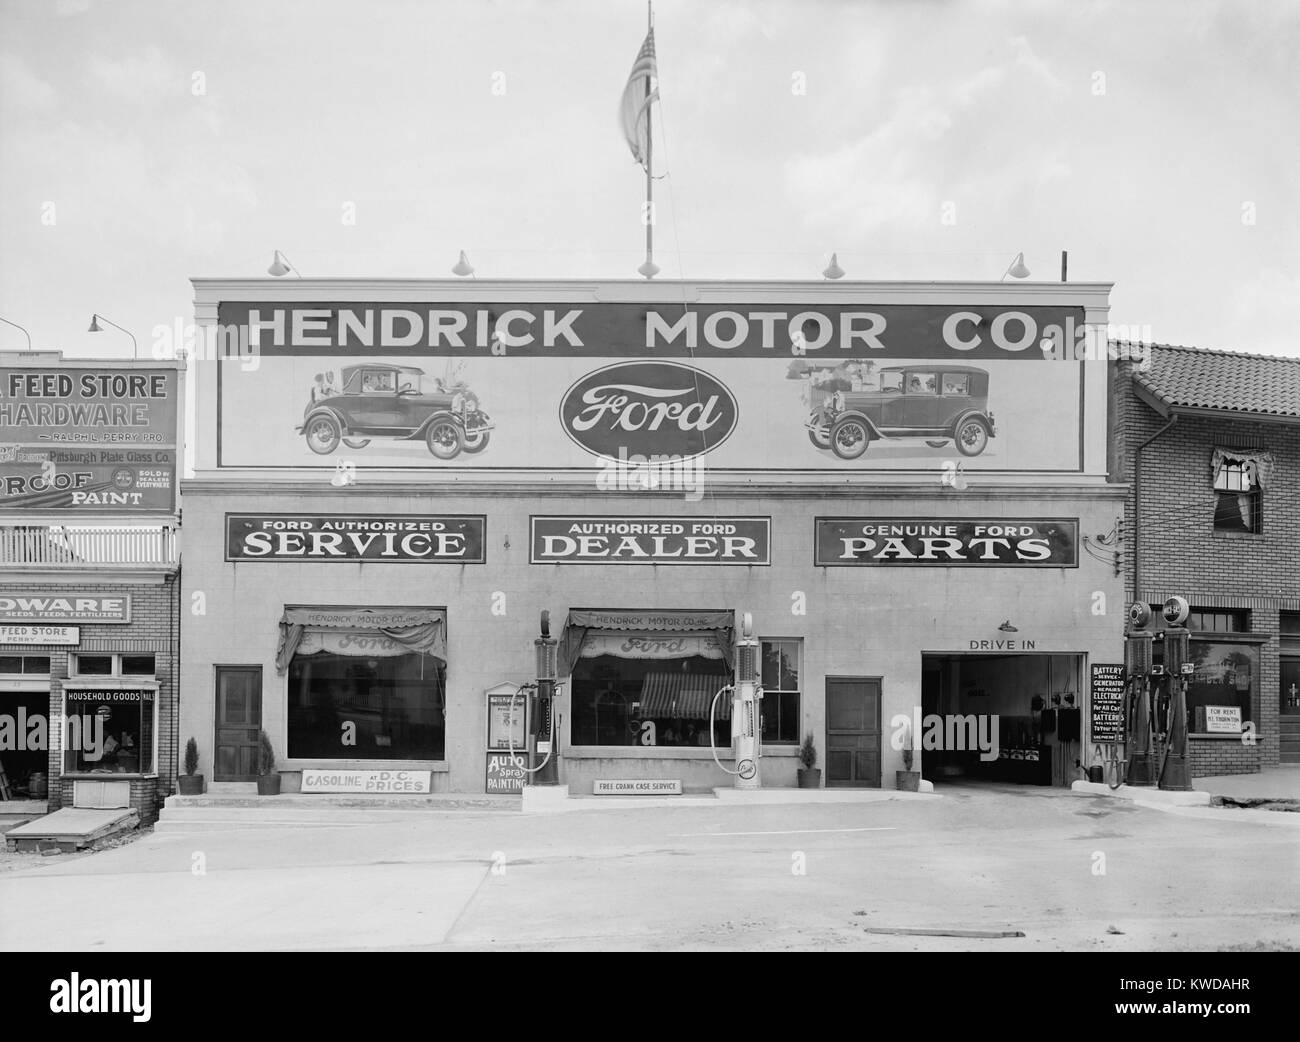 Hendrick Motor Co. in Washington, D.C. in the 1920s. They advertise as an authorized Ford dealer, that provides - Stock Image